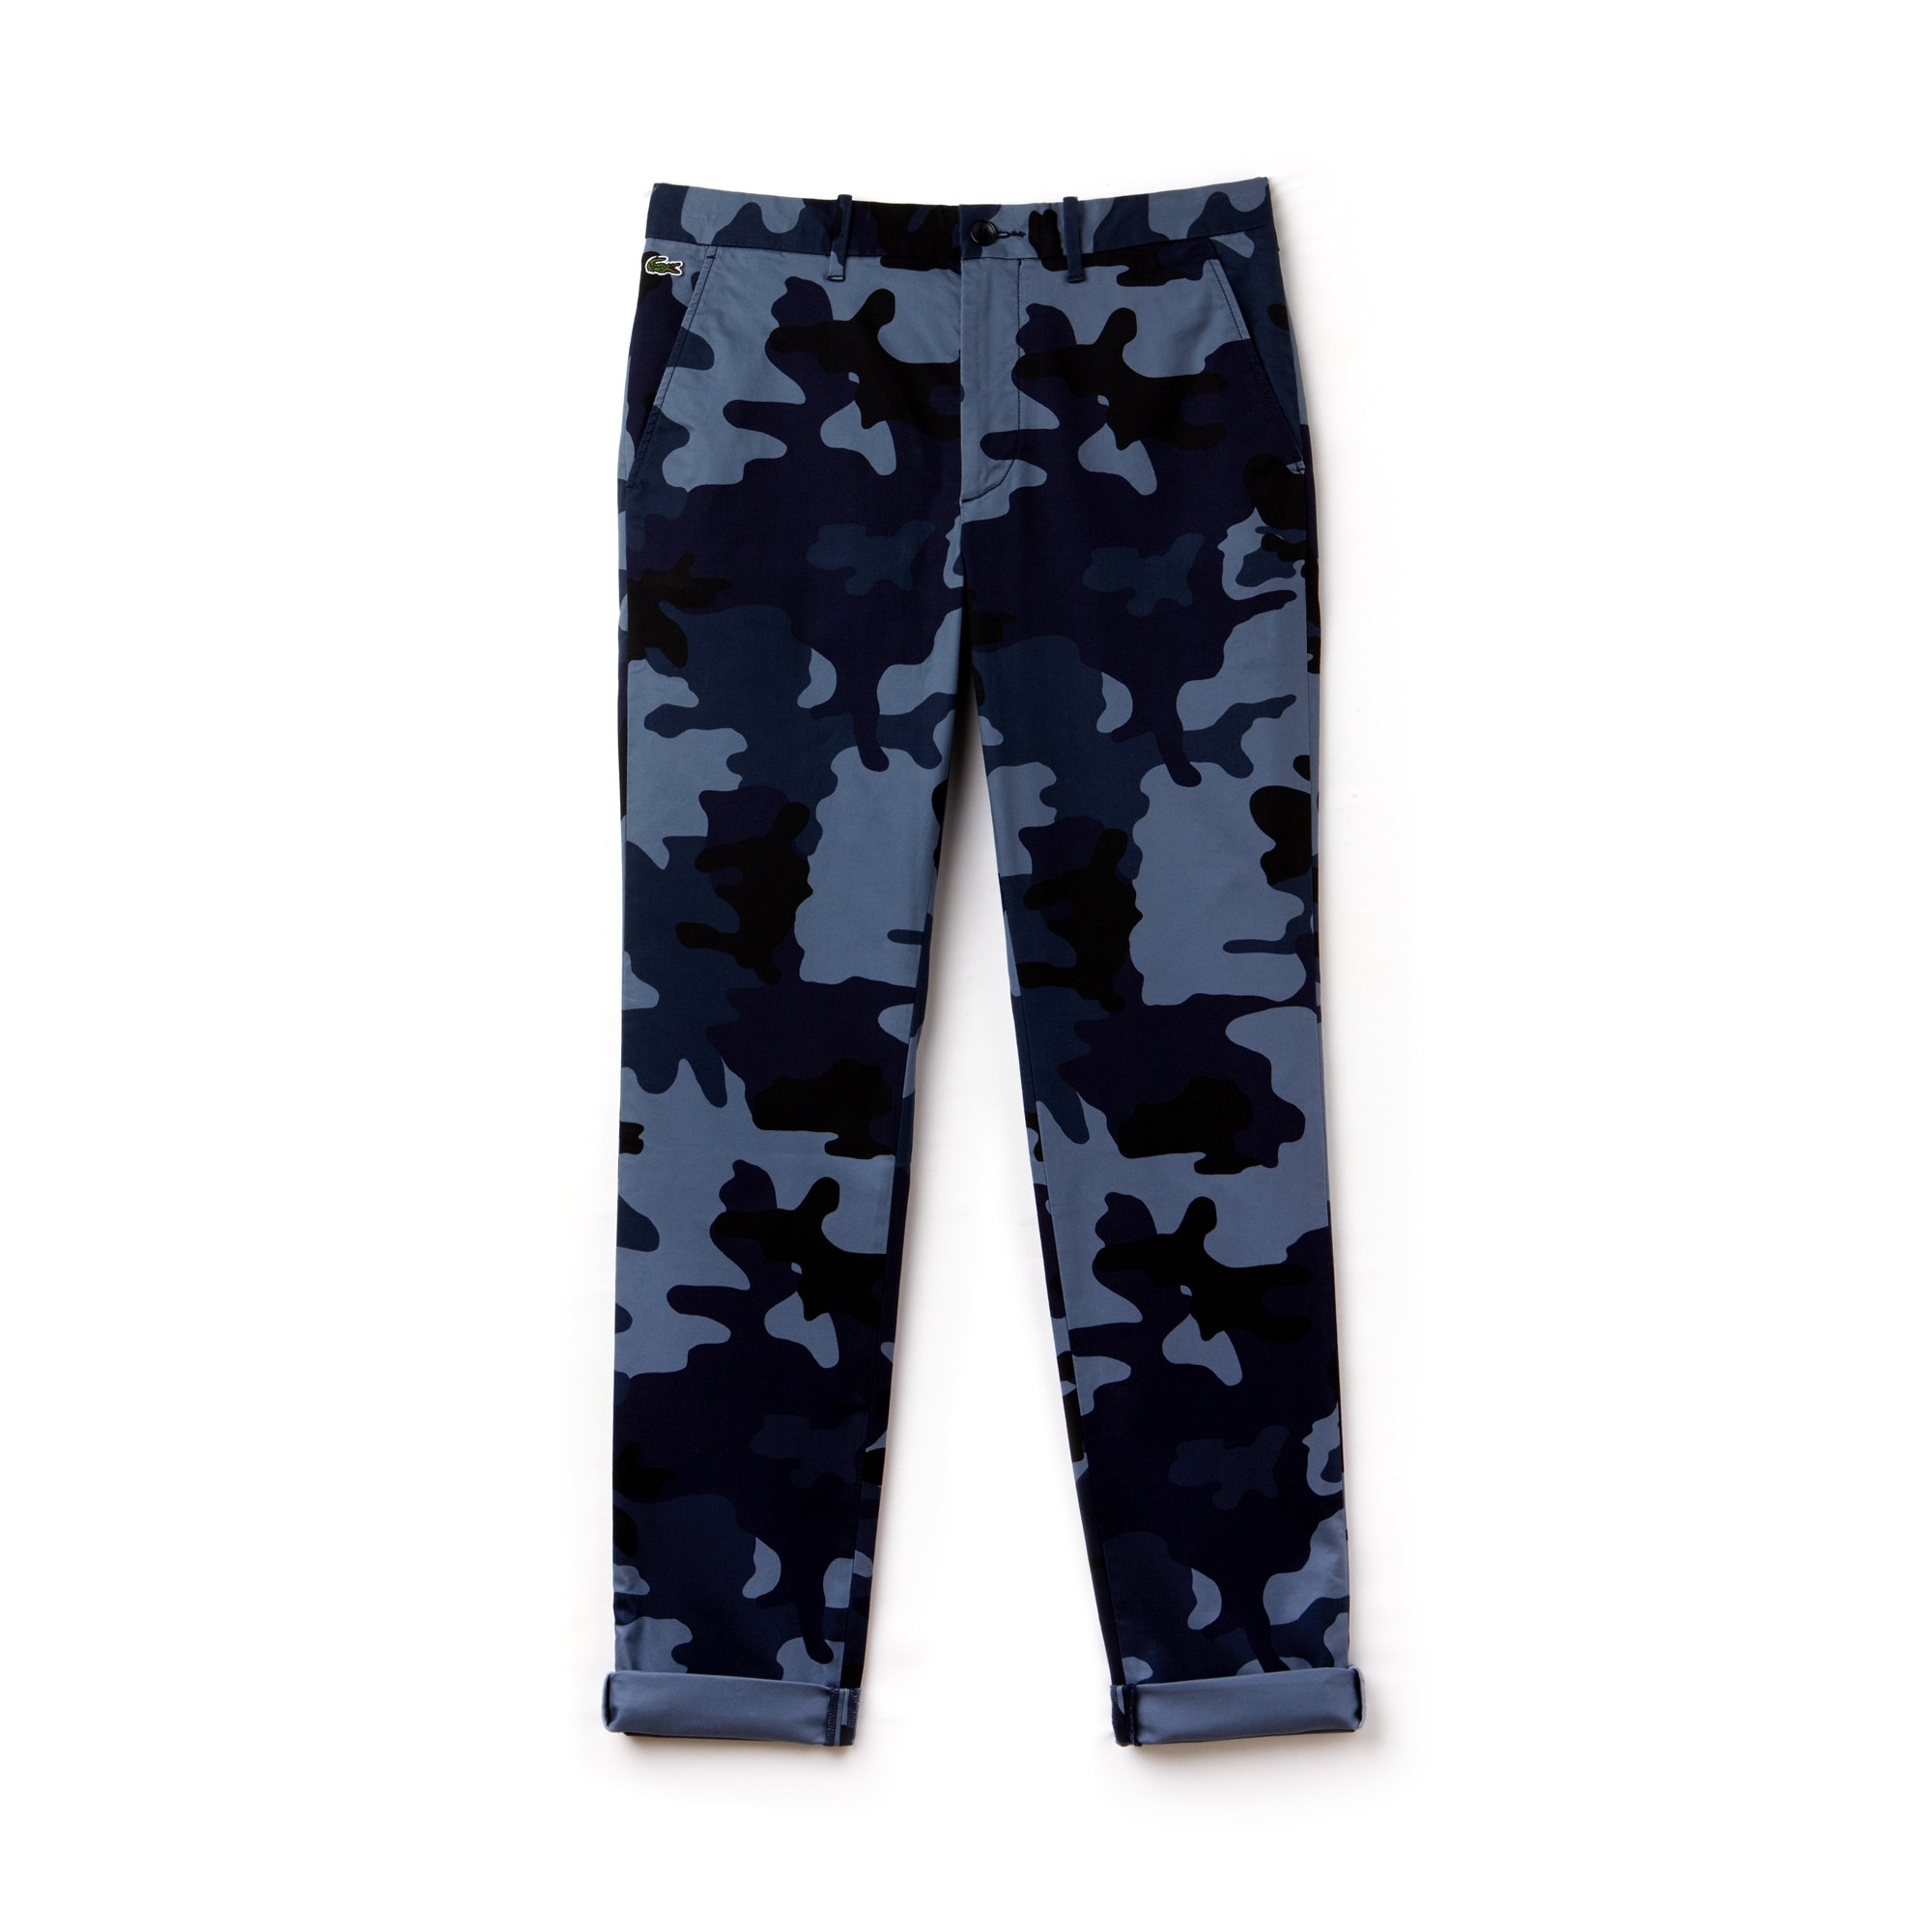 Men's LIVE Print Twill Chino Pants